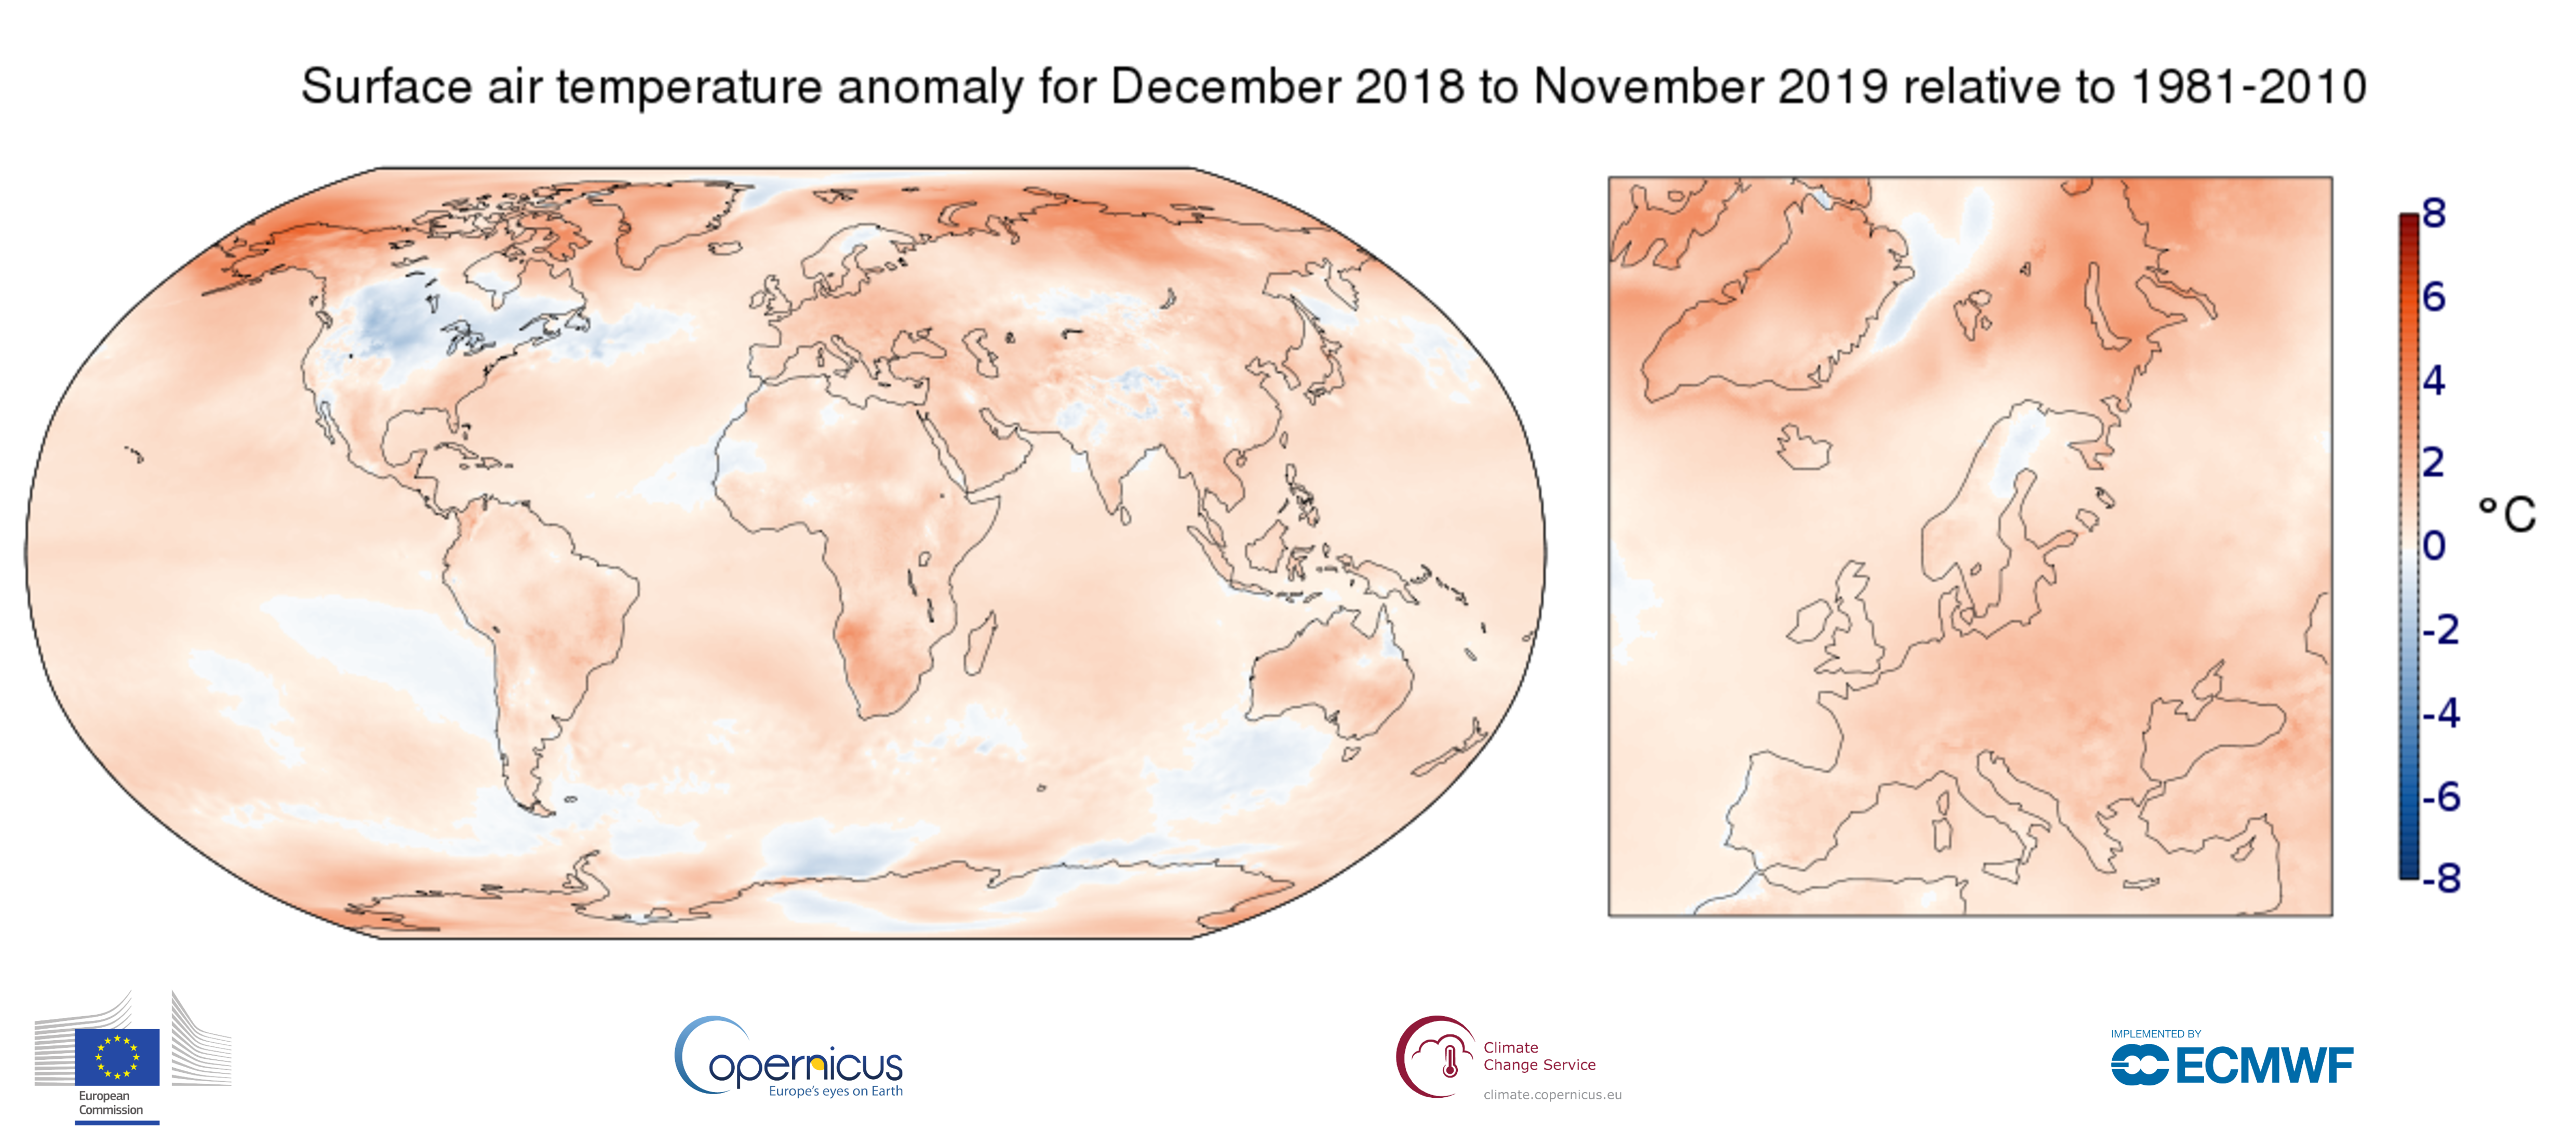 map 12month anomaly Global ea 2t 201911 v02 0 ART 158: TEMPERATURA DEL AIRE EN SUPERFICIE N0VIEMBRE 2019